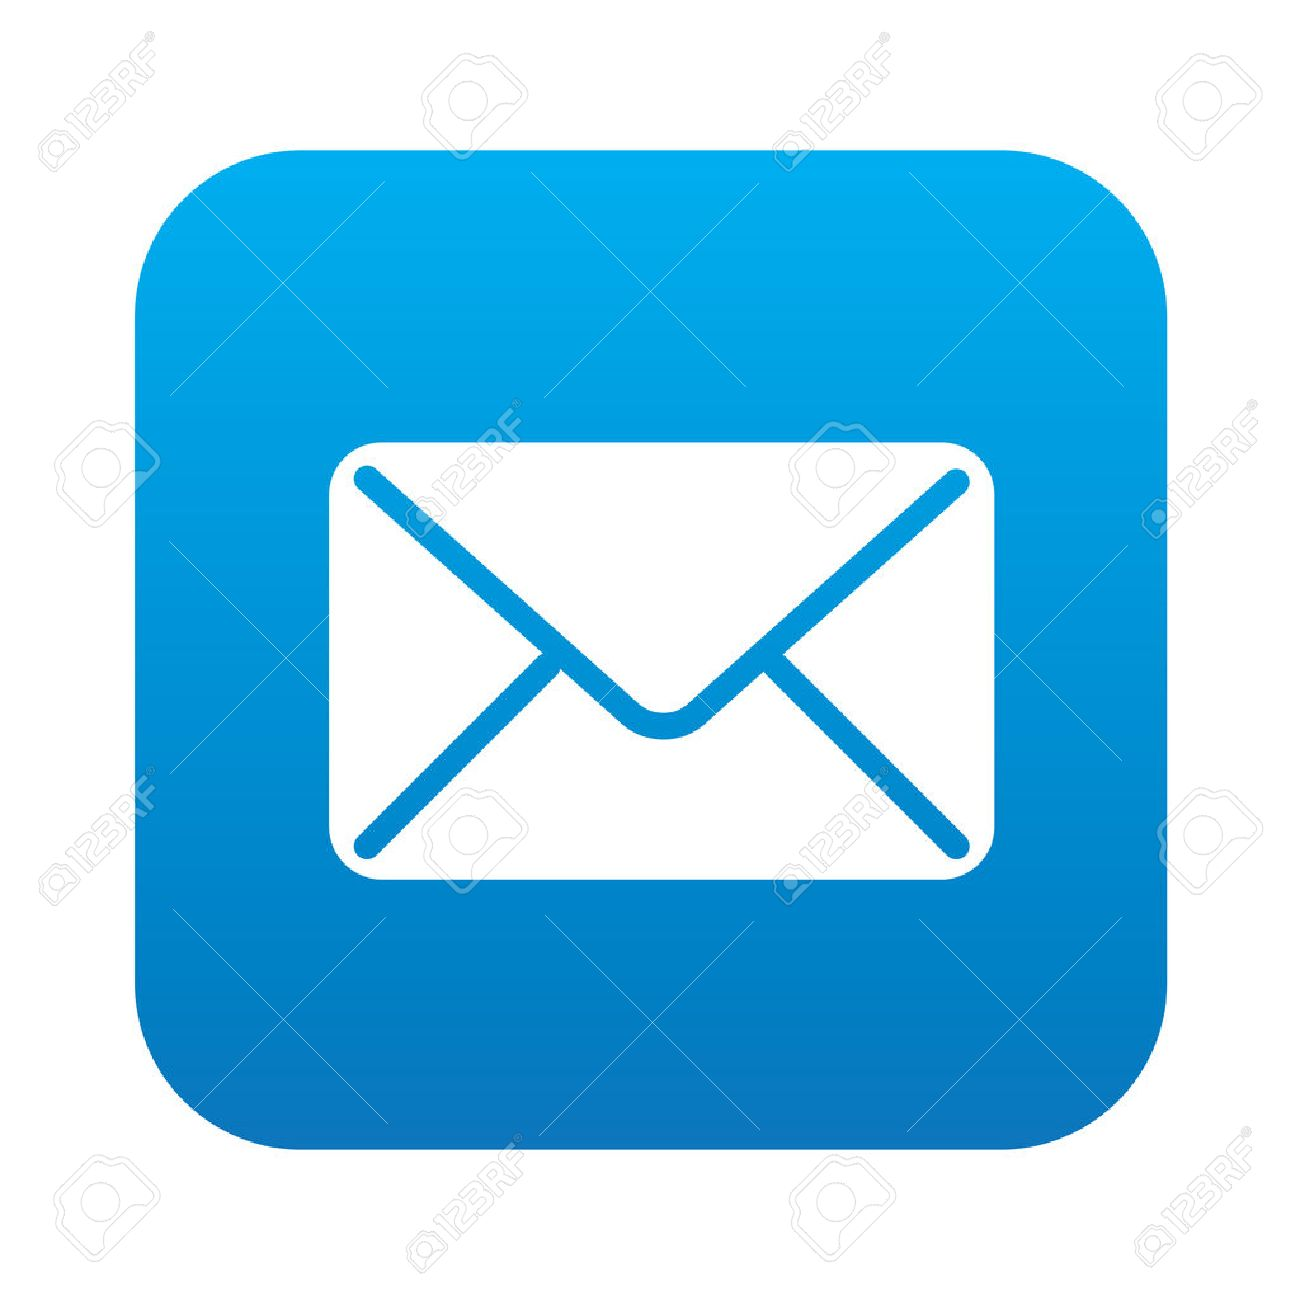 email icon on blue background clean vector royalty free cliparts rh 123rf com email vector icon free email vector icon ai